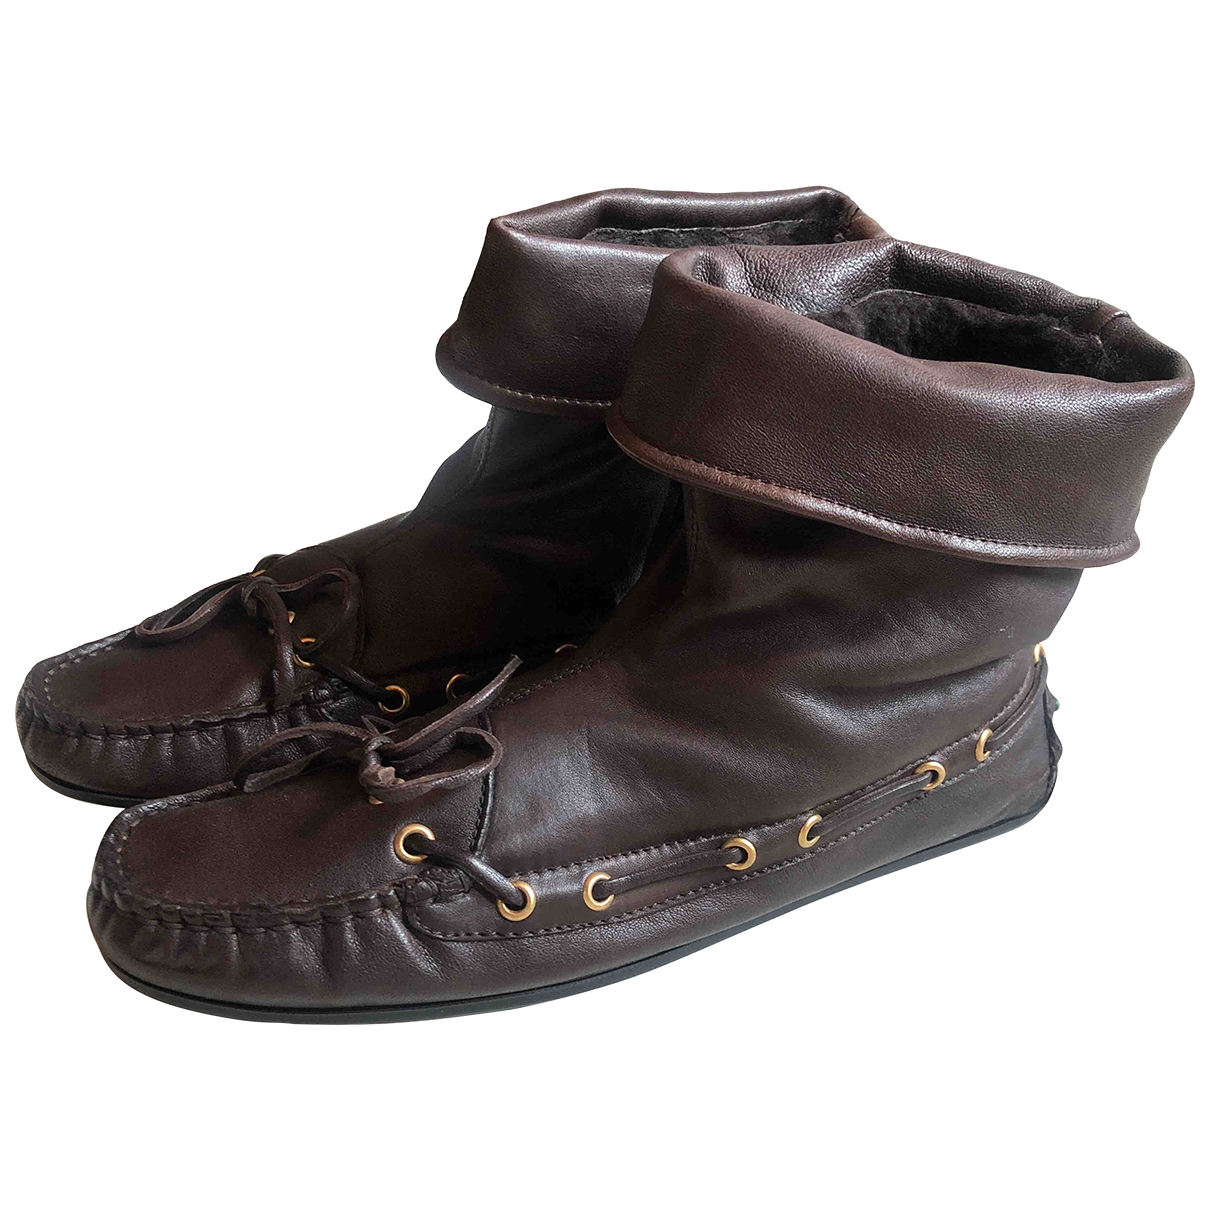 Serafini \N Brown Leather Ankle boots for Women 39 EU